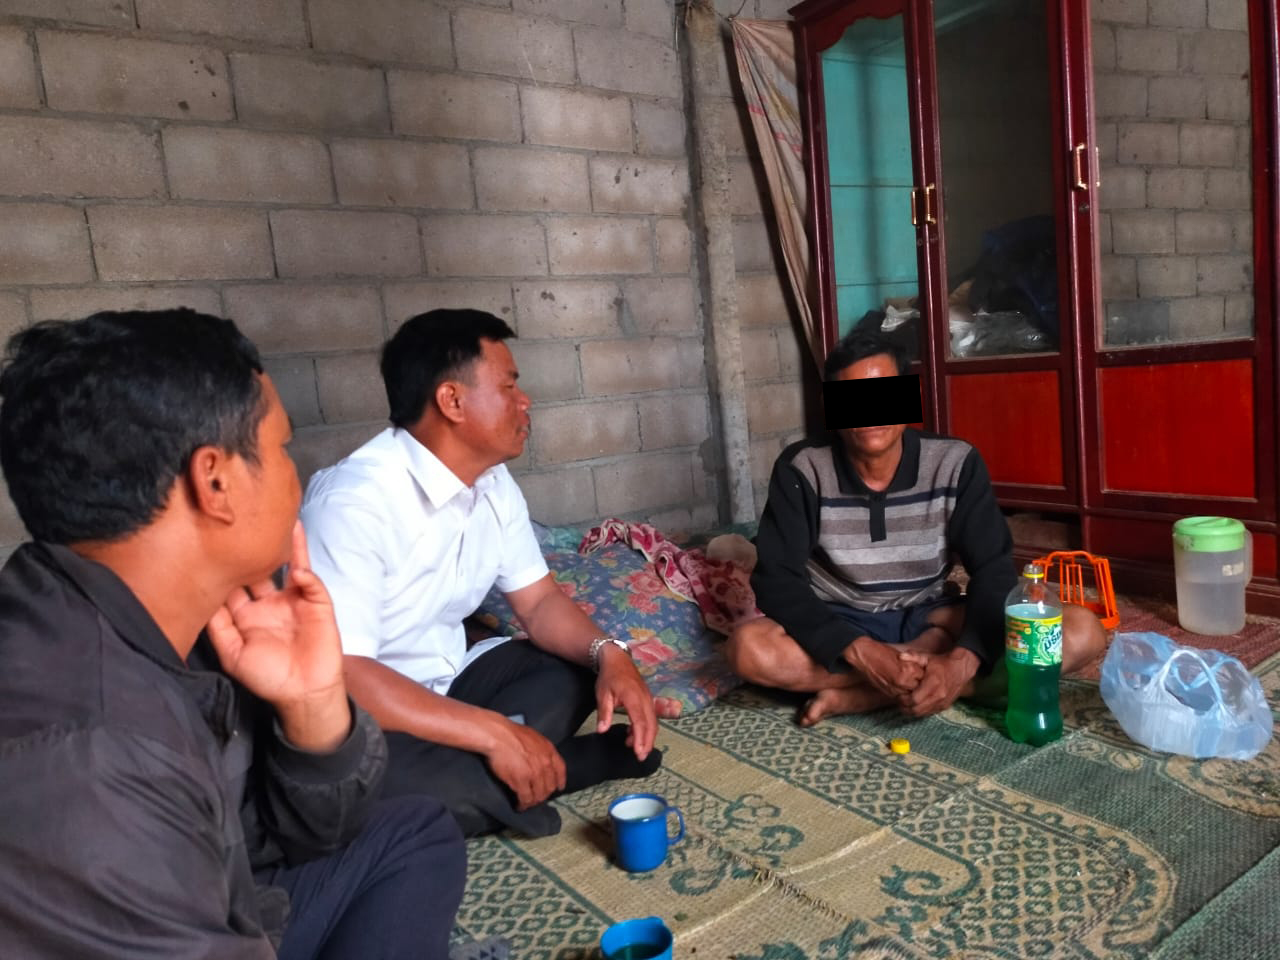 LAOS | MAR. 22, 2021 — Family Fined for Hosting Worship Gatherings